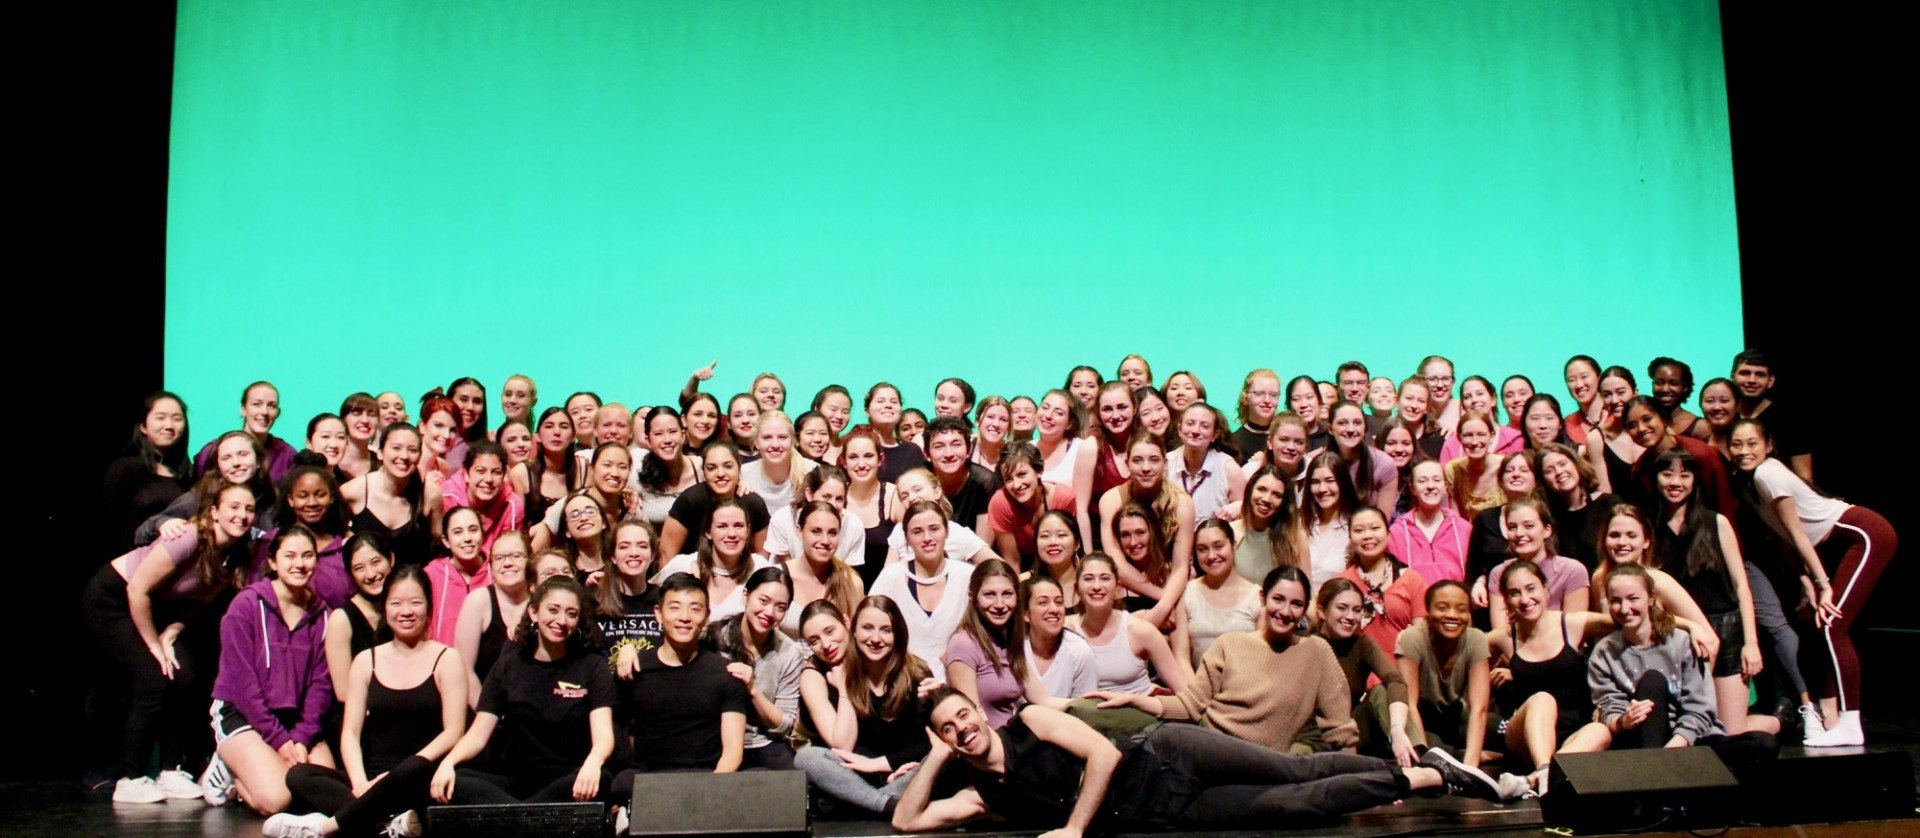 Group photo onstage of the entire 150-person cast of our Spring 2019 performance.